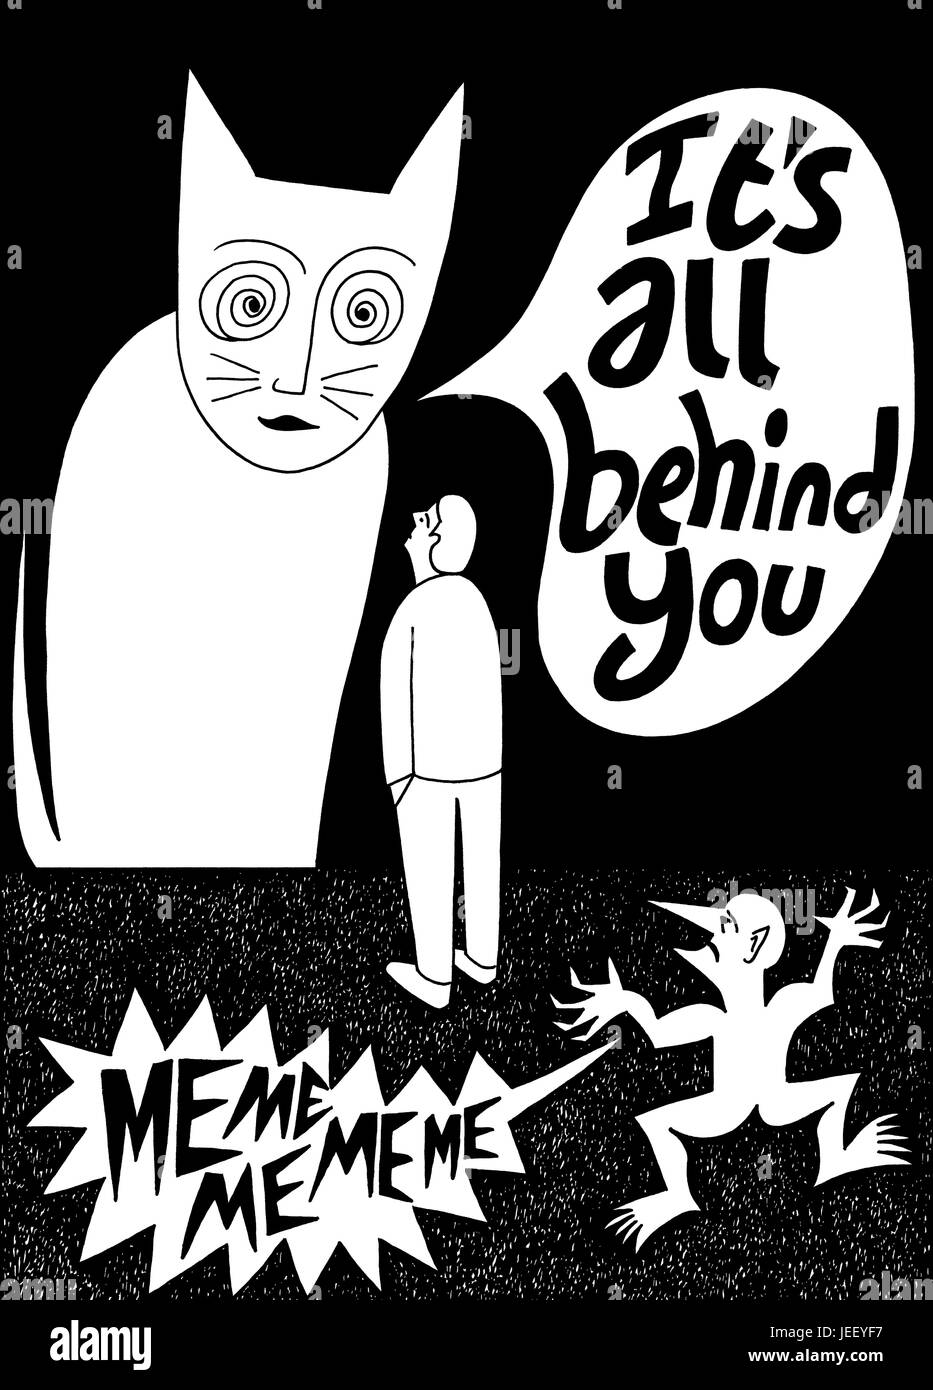 It's all behind you. A black and white editorial illustration. - Stock Image